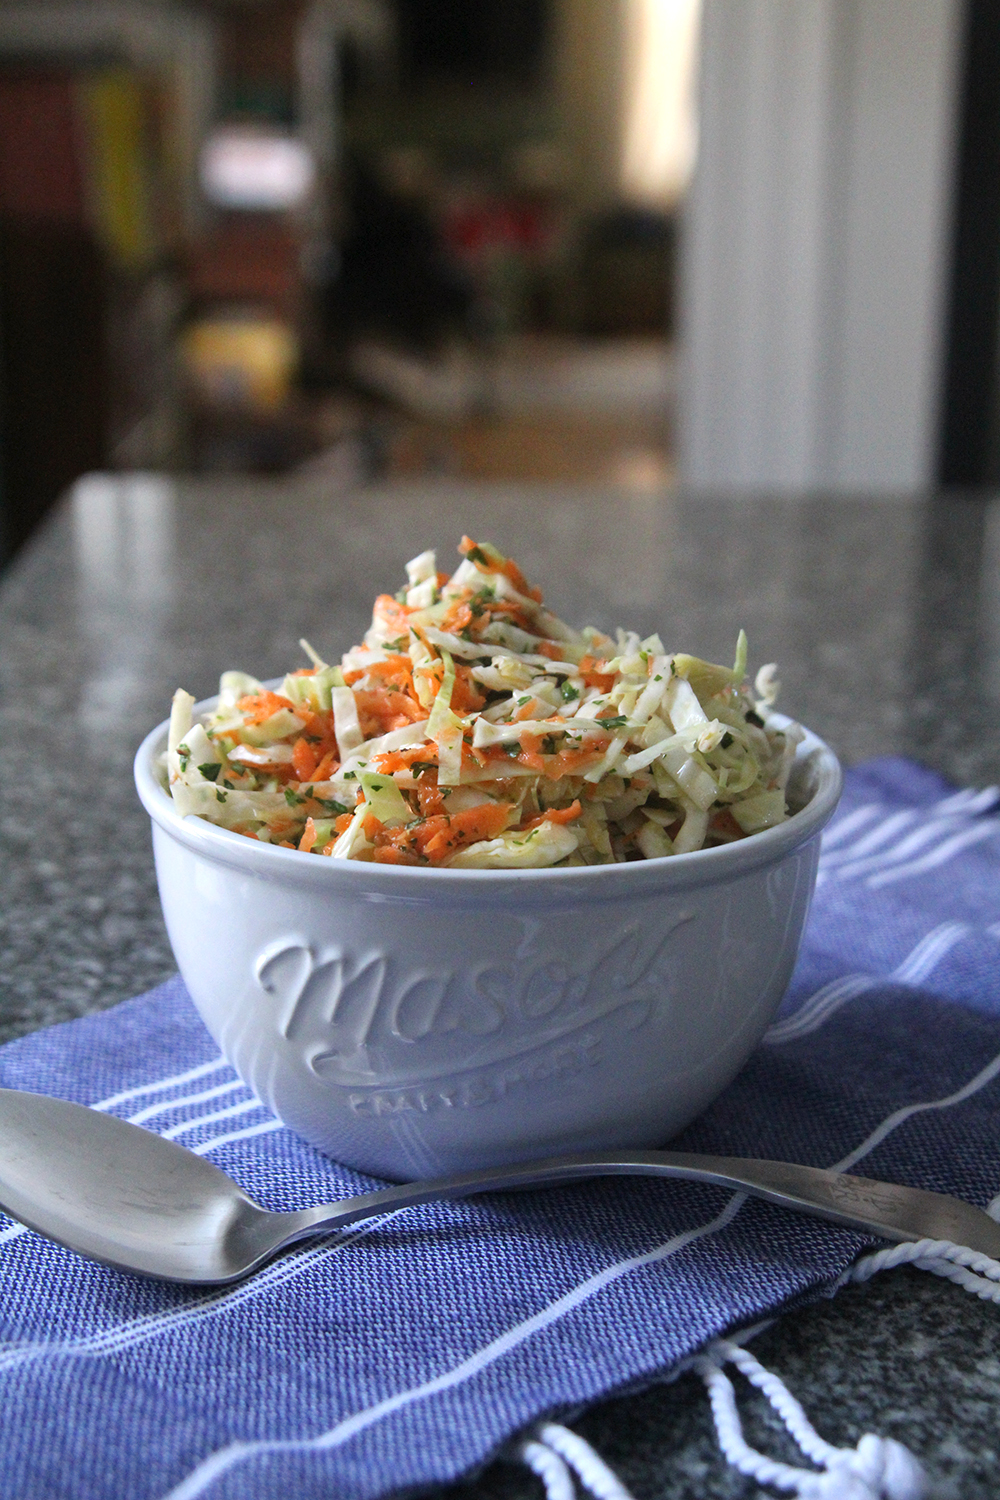 Oil and Vinegar Coleslaw is shown in a white bowl on a blue and white cloth on a granite countertop with a silver spoon nearby.